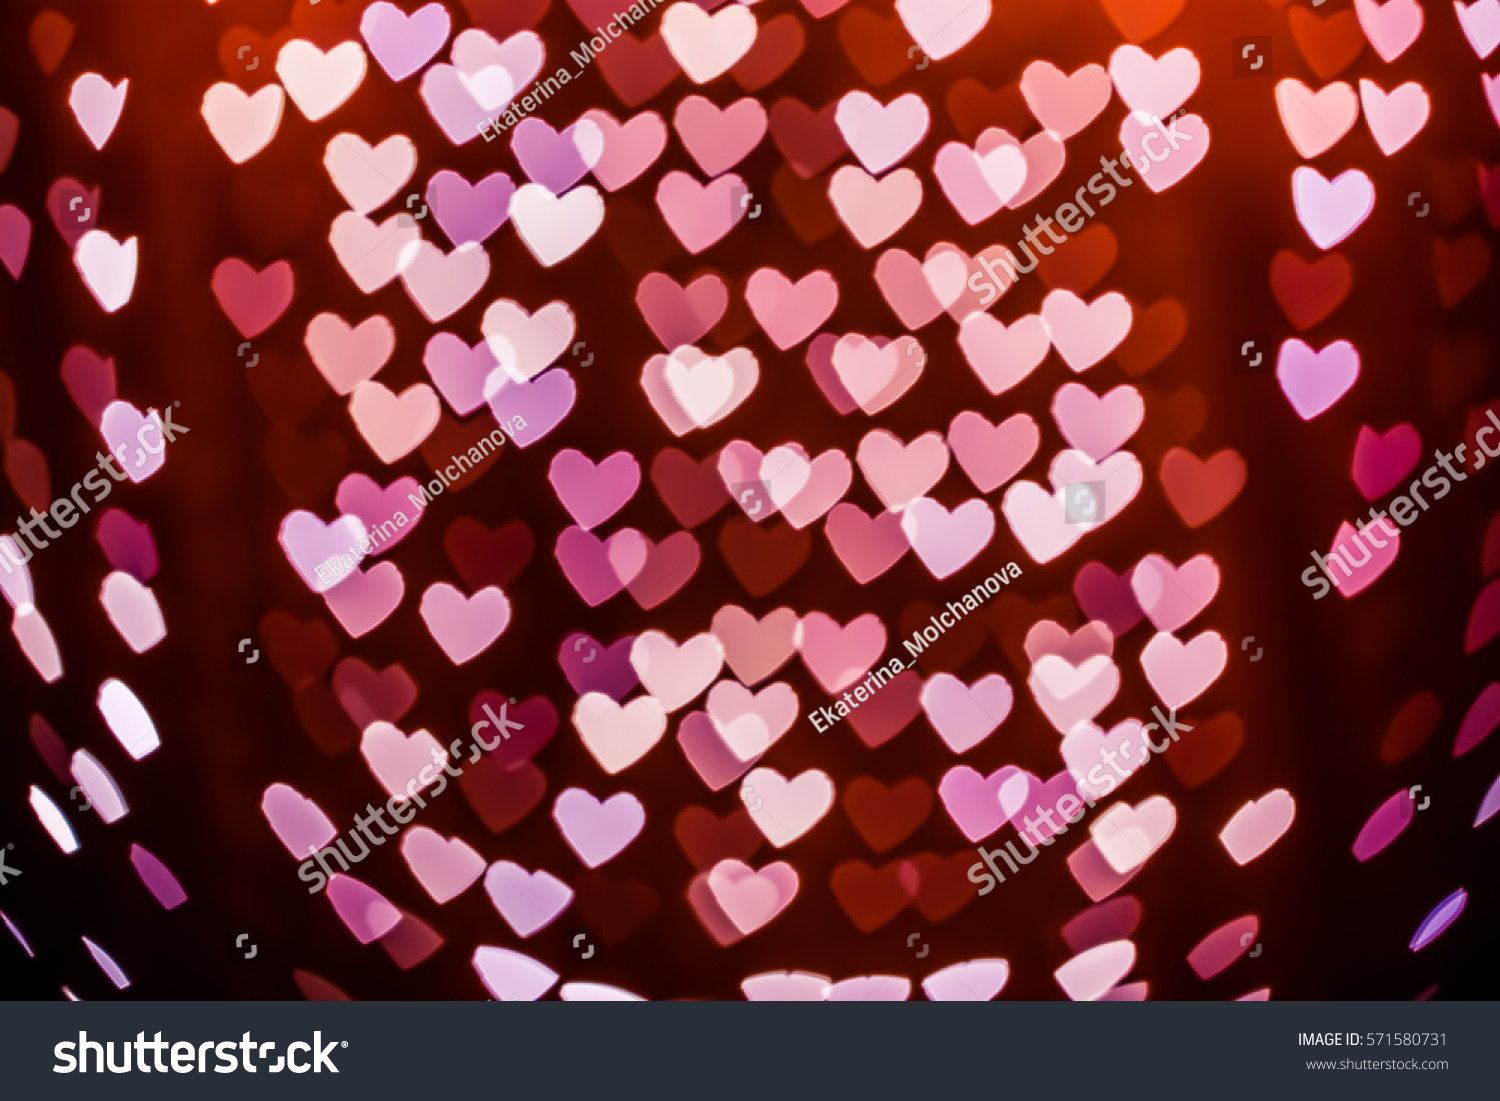 Bokeh Heart Shape Of Light Background Stock Footage Video: Heart Shaped Holiday Blurred Bokeh Background Stock Photo